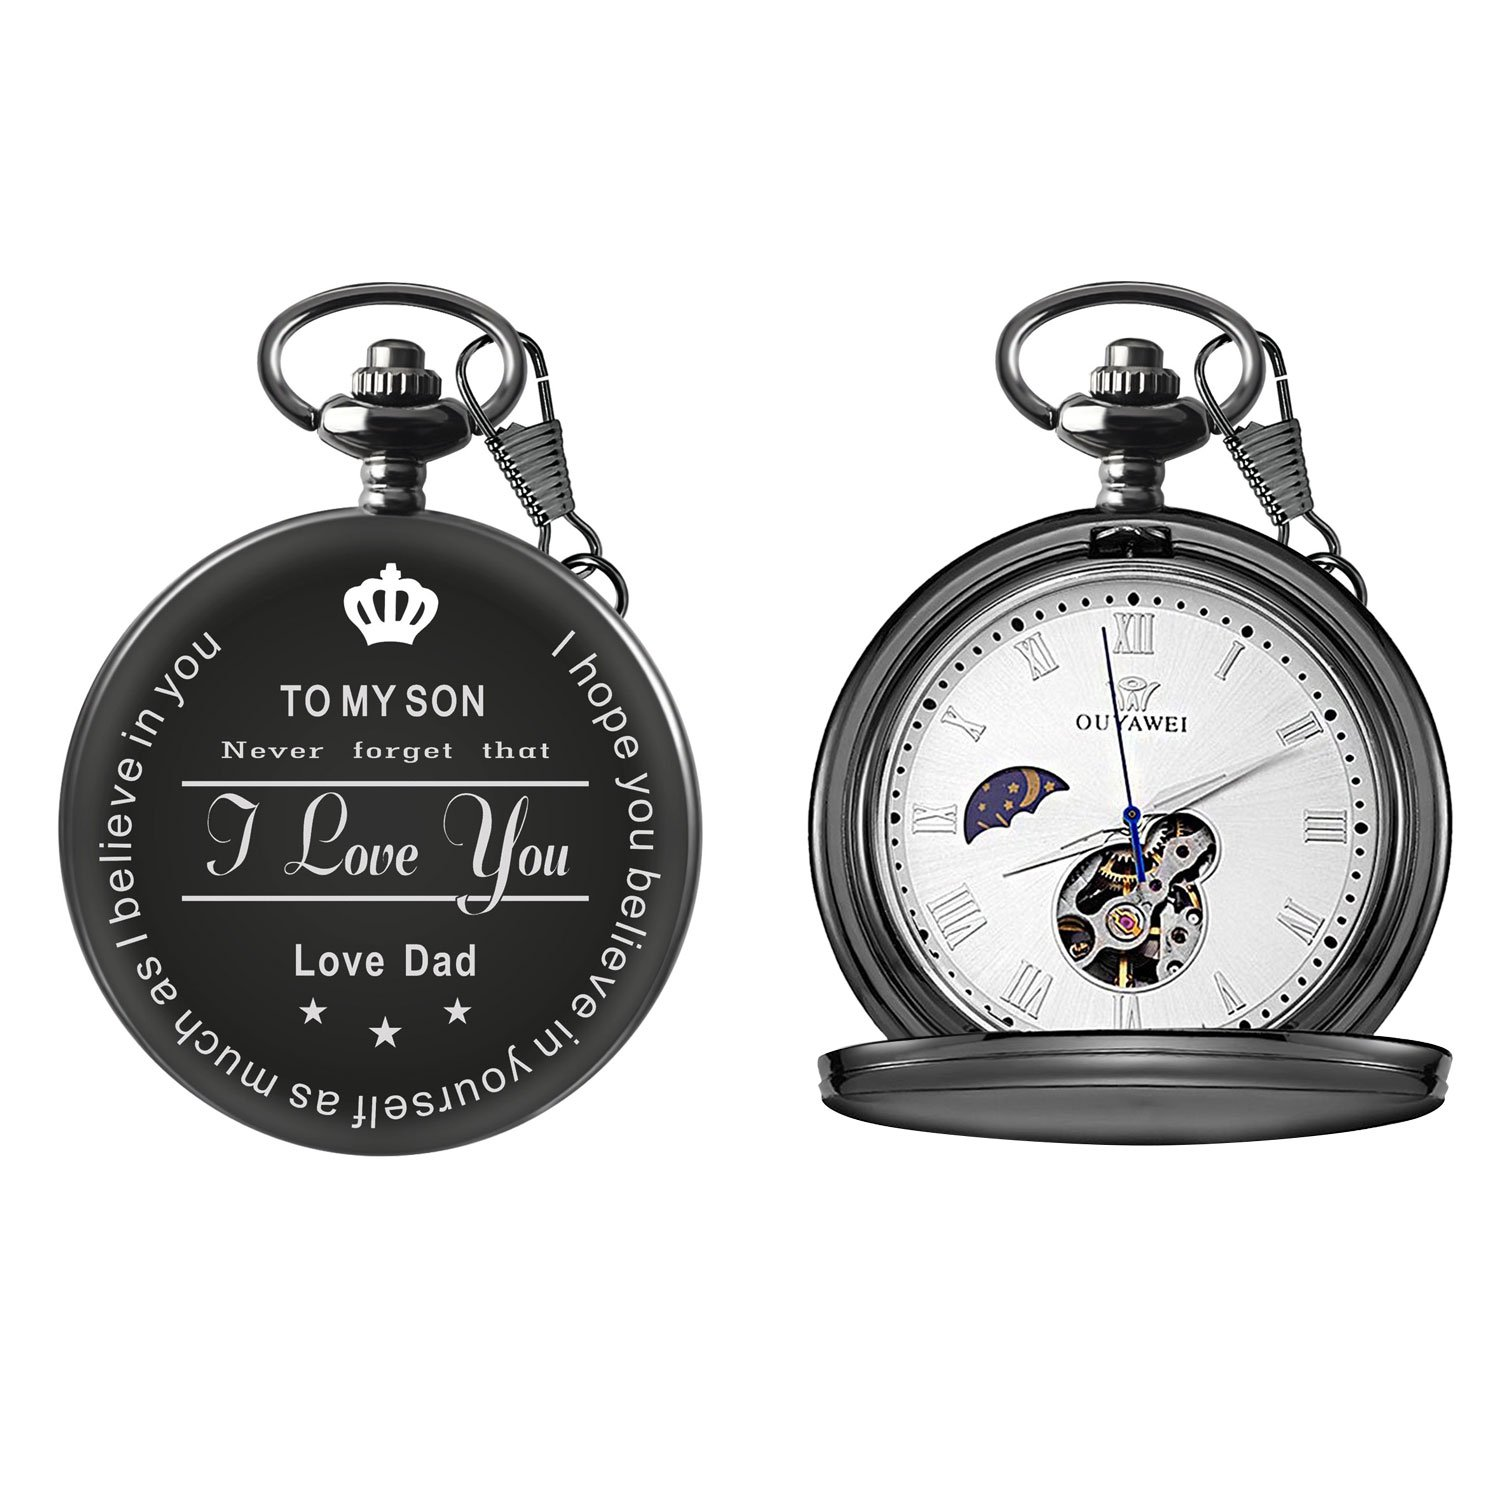 To My Son Love Dad Pocket Watch for Son Gifts from Dad (Love Dad Black Mechanical Pocket Watch) by Ginasy (Image #1)